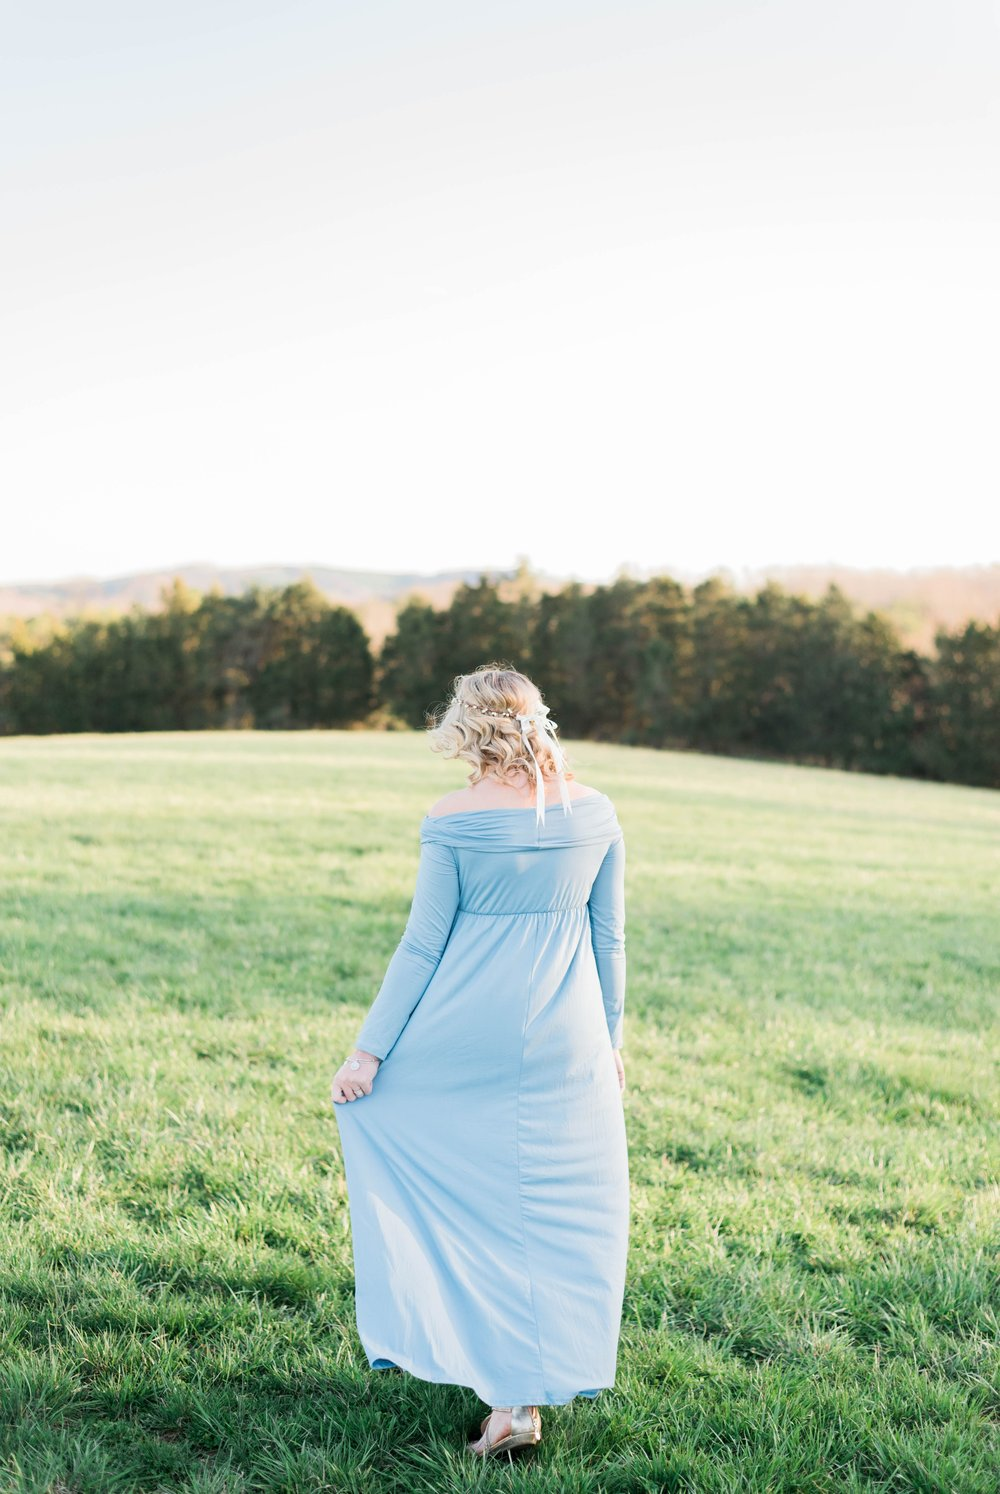 SorellaFarms_Jessica+Dylan_MaternitySession_Virginiaweddingphotographer 35.jpg